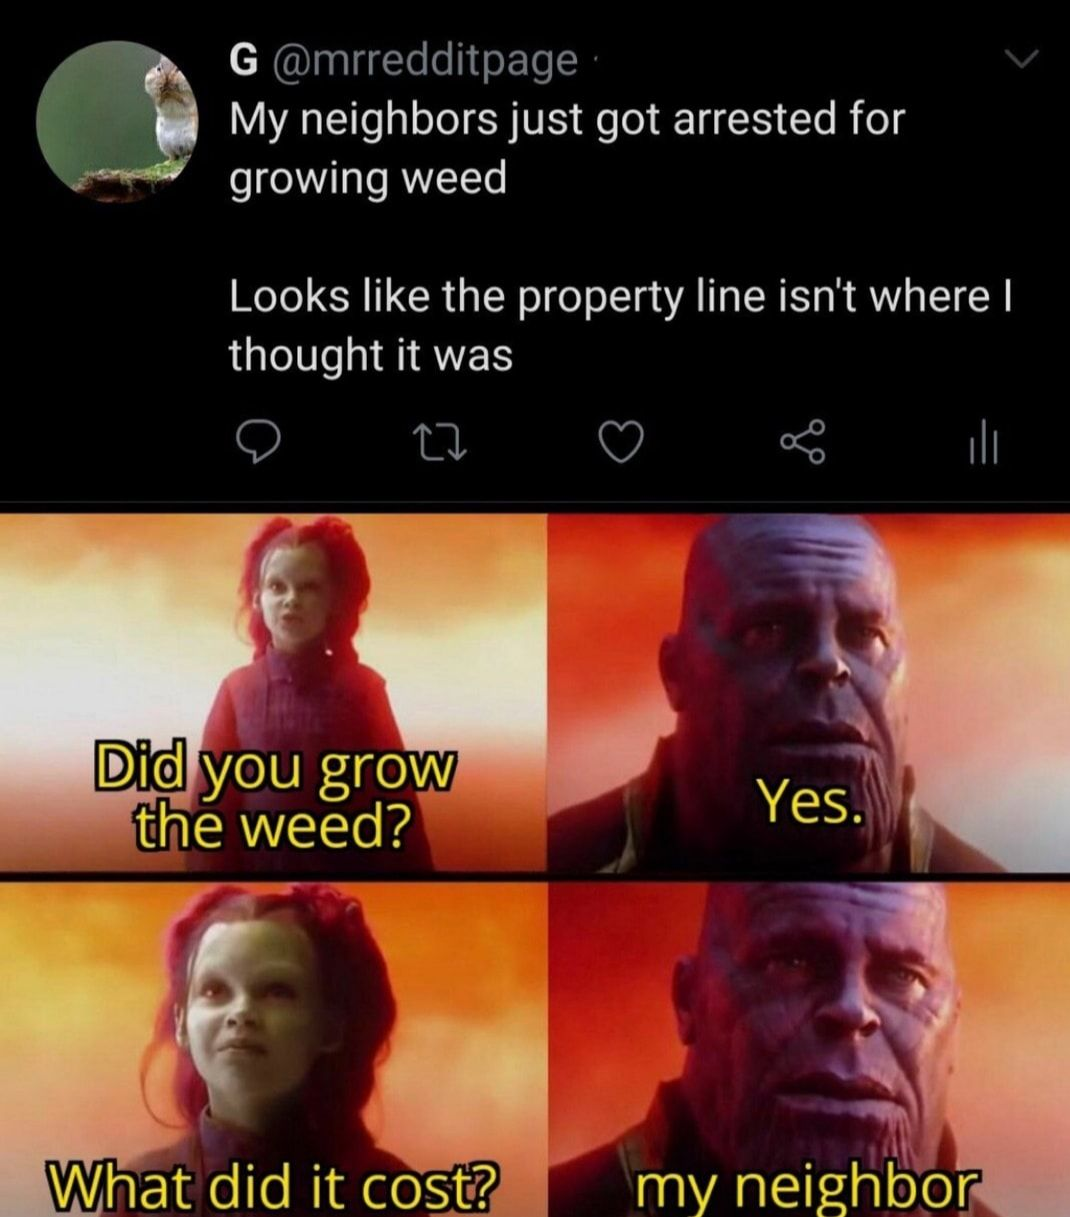 To be fair I wasn't going to call the health department for the property lines...